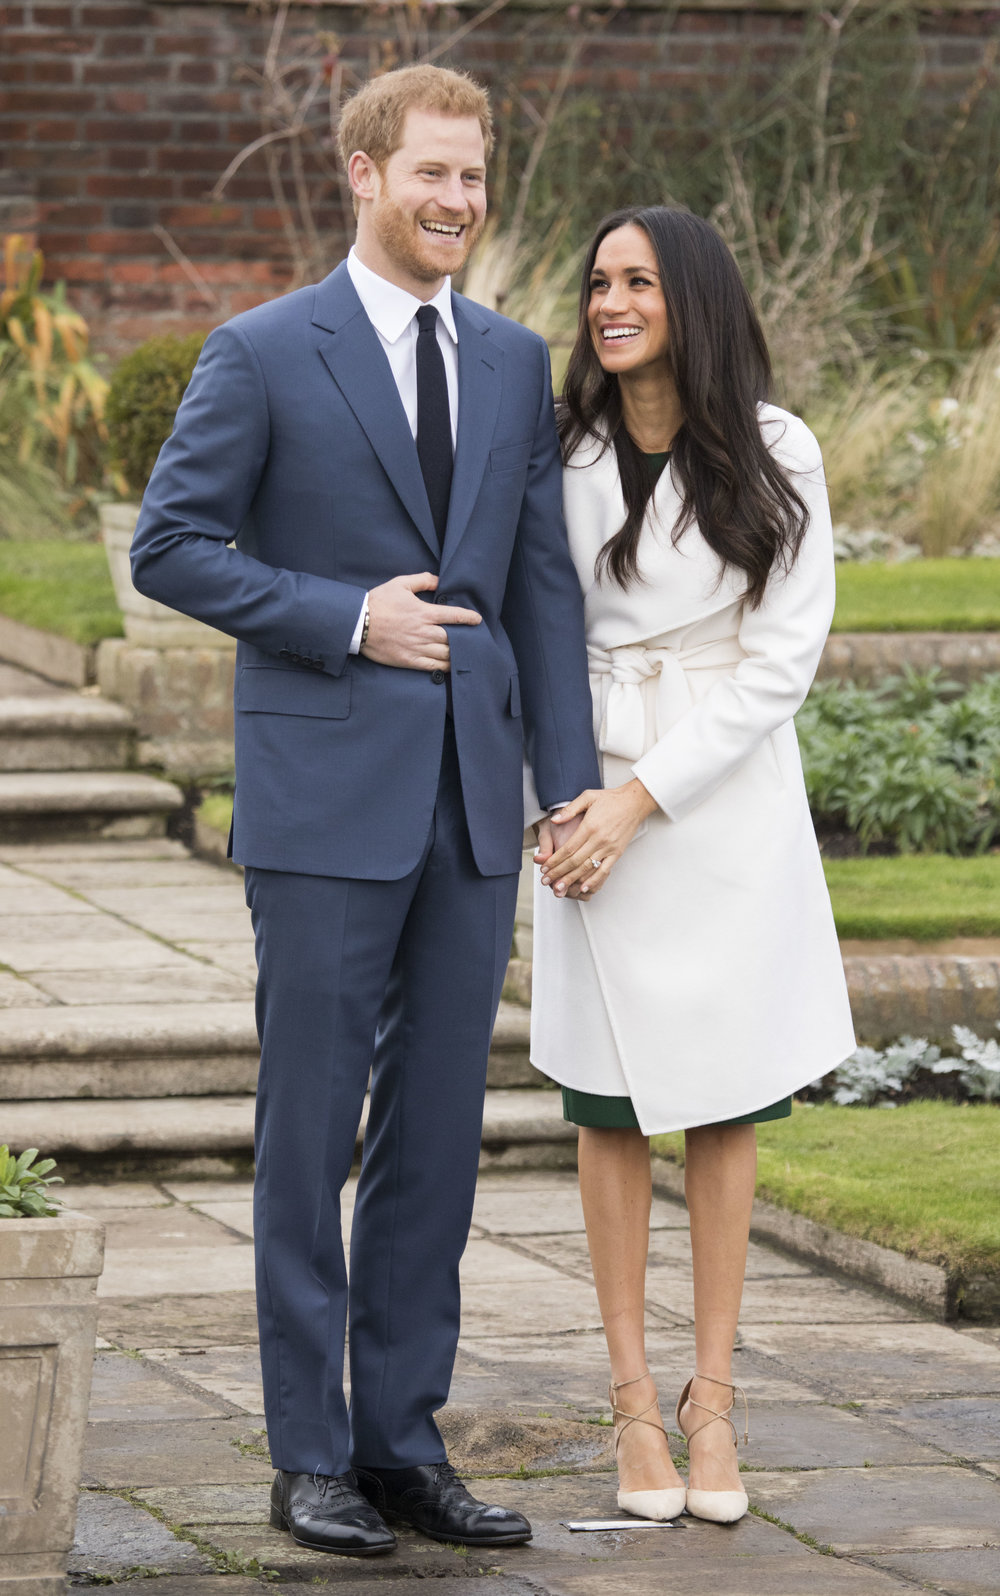 PHT_B5327_prince_harry_engagement_24416.JPG